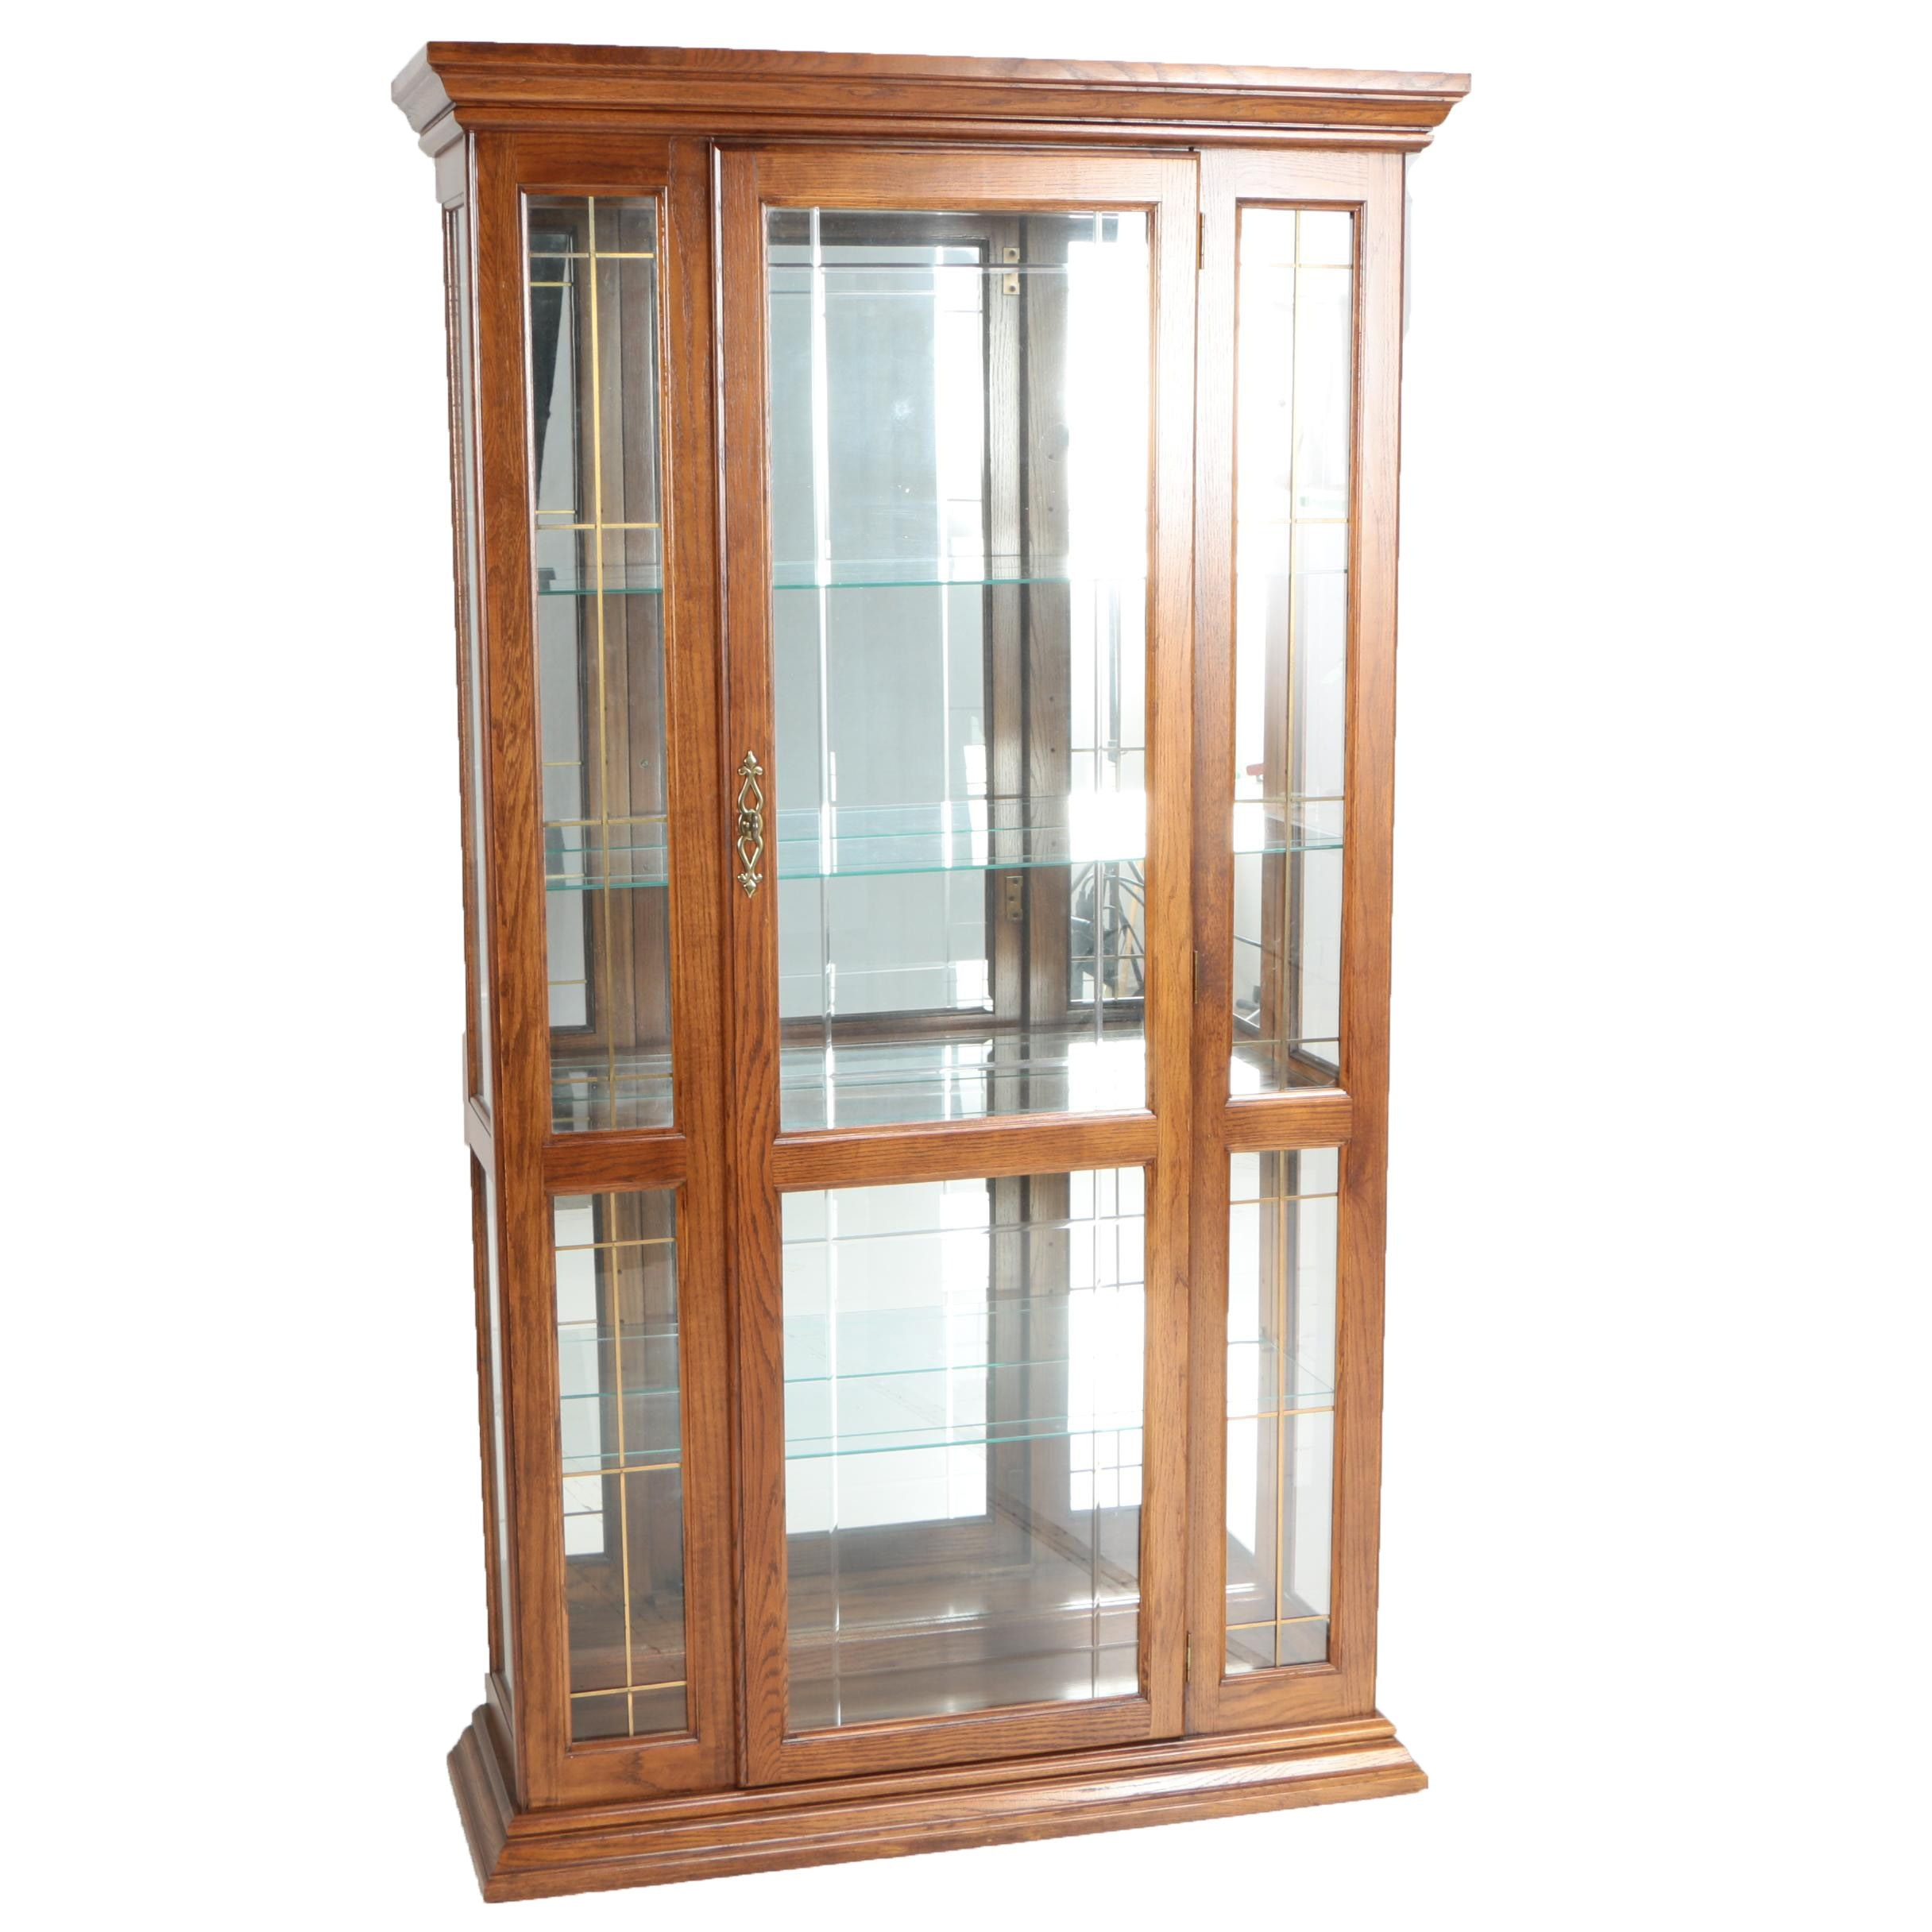 Illuminated Glass and Wood Cabinet